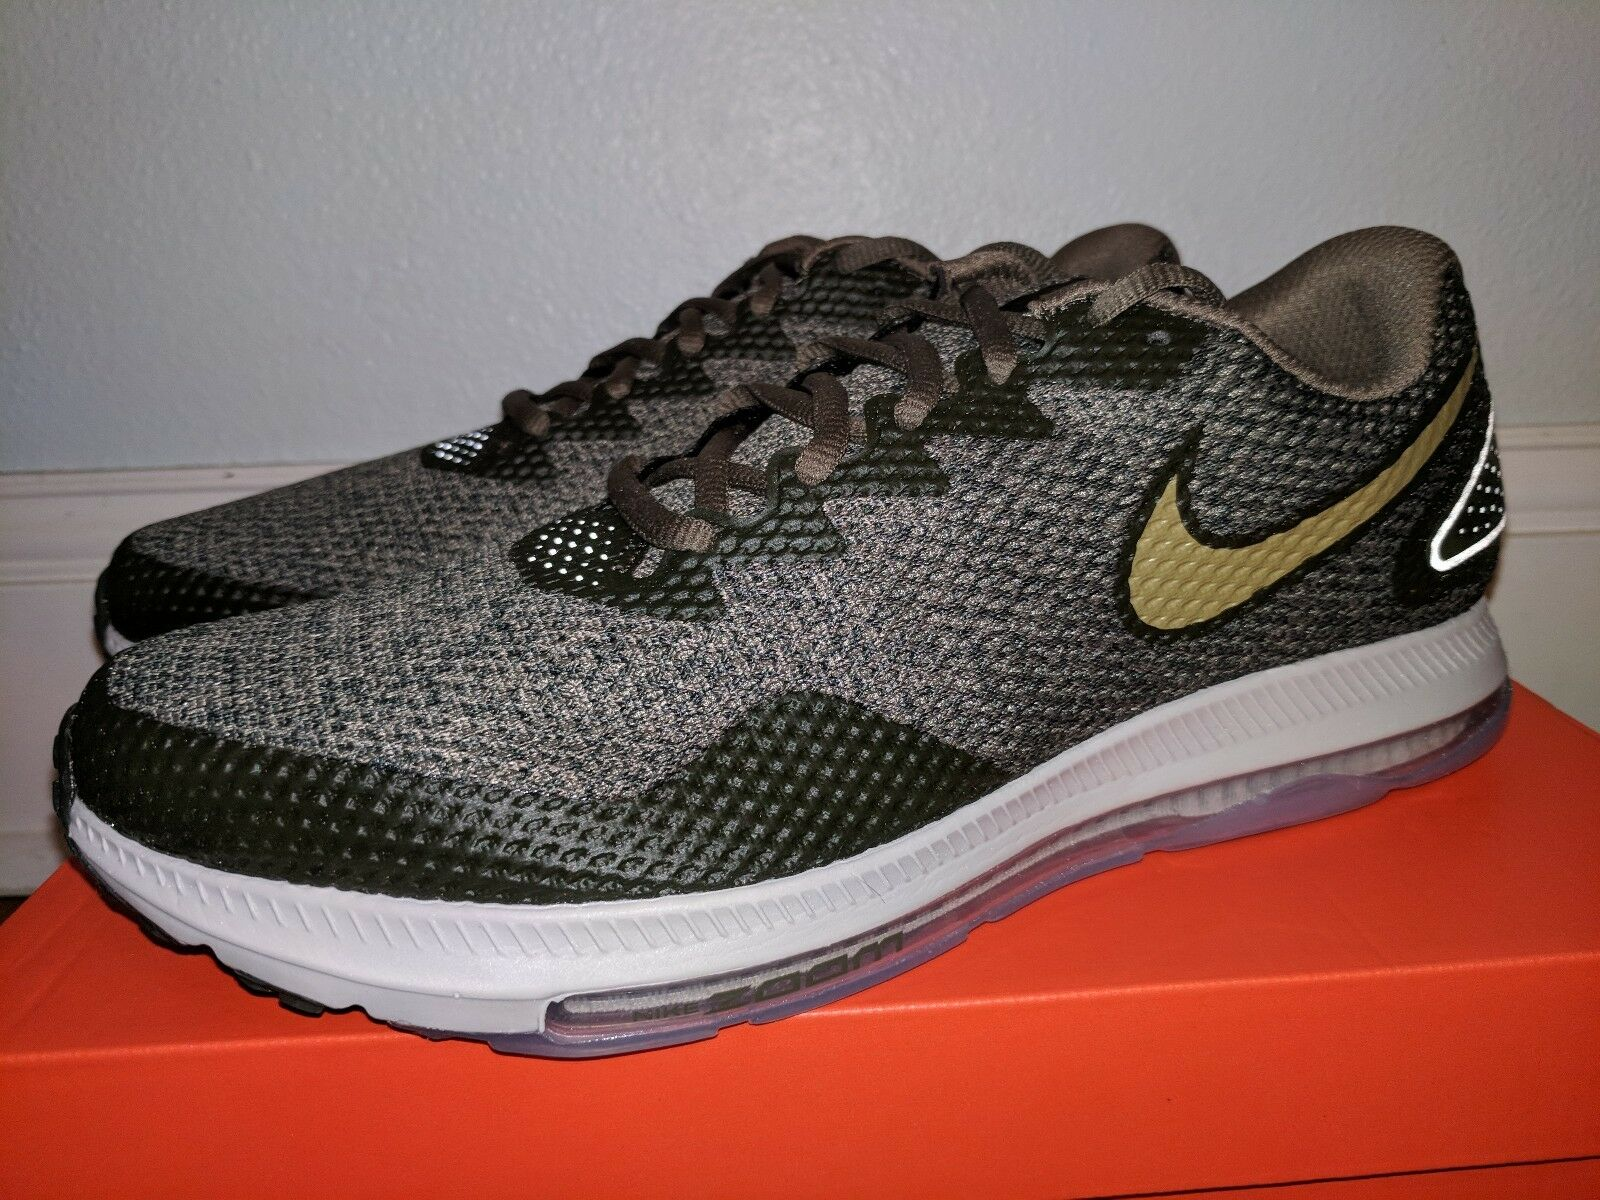 NIKE AIR ZOOM ALL OUT LOW 2 OLIVE/DESERT MOSS 10.5